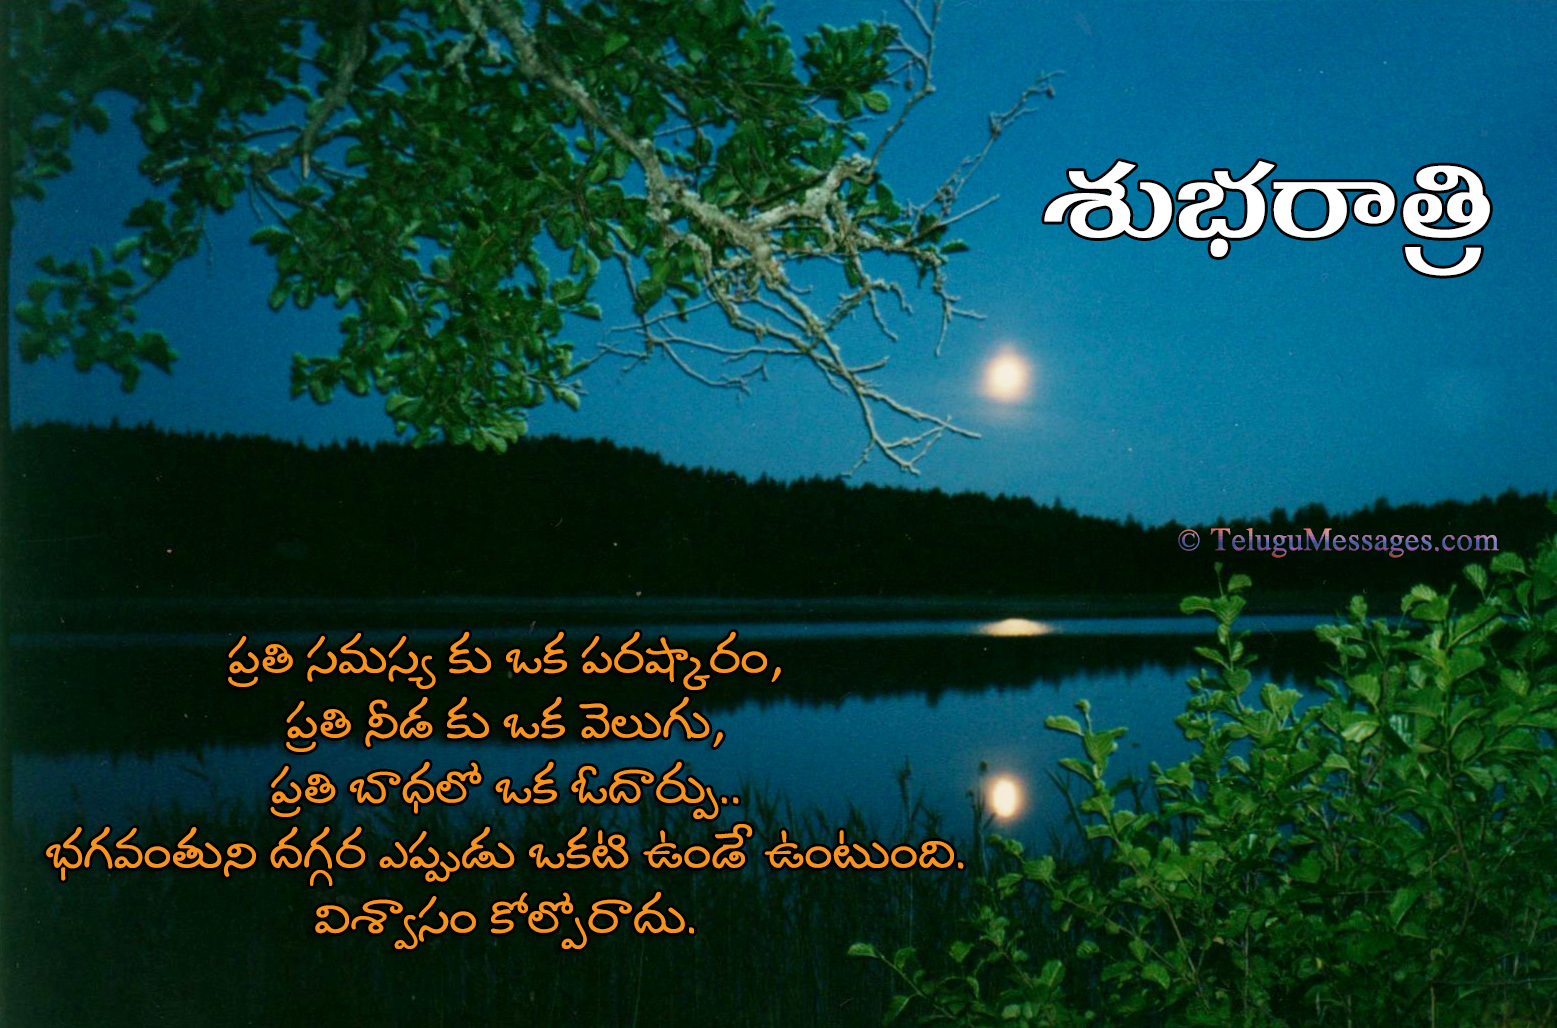 Telugu good night quotes